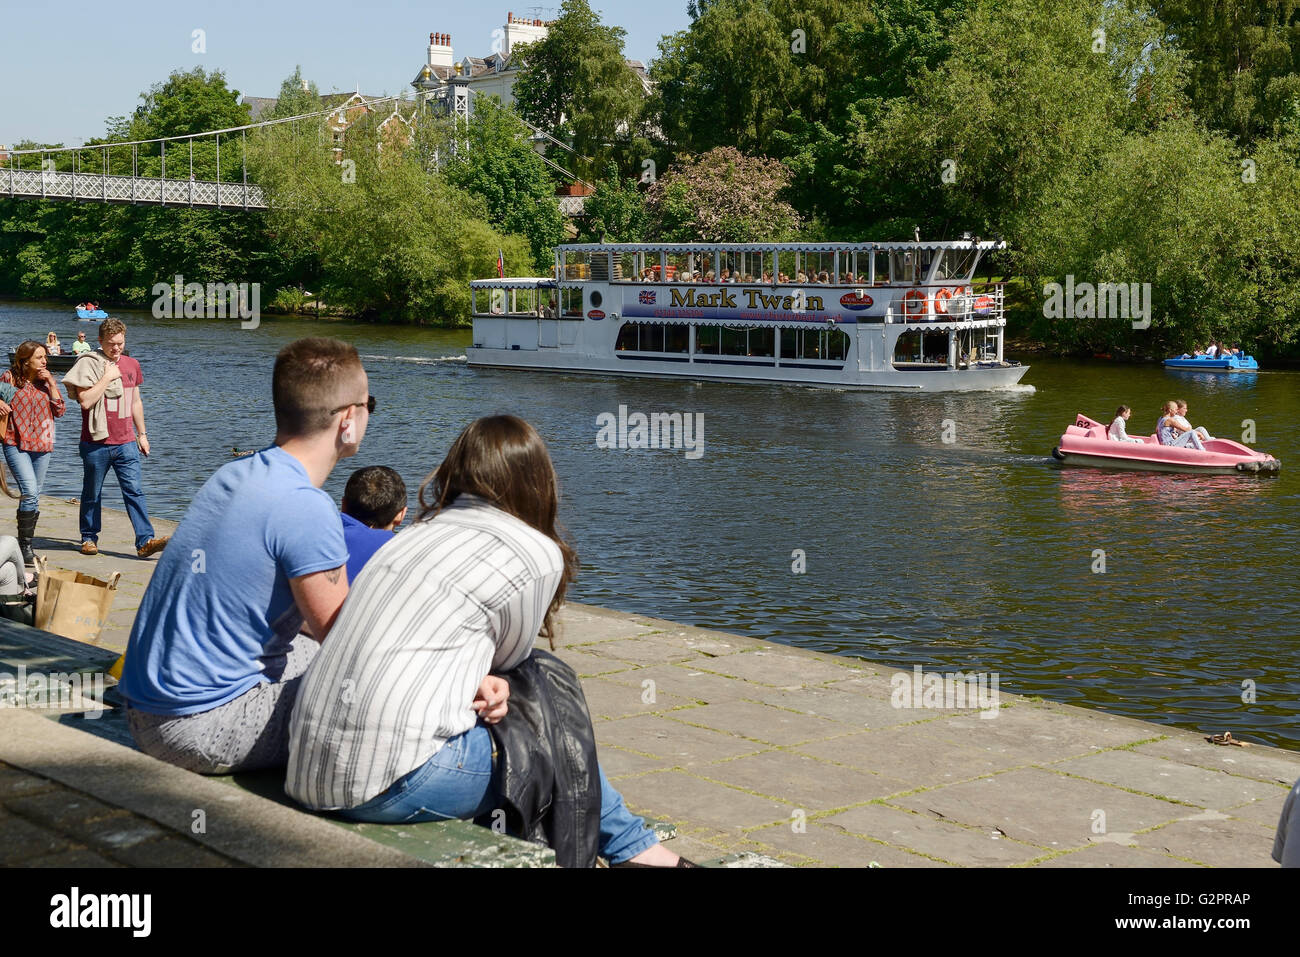 The Groves, Chester, UK. 2nd June 2016. People enjoying the sunny weather on the River Dee at The Groves in Chester - Stock Image